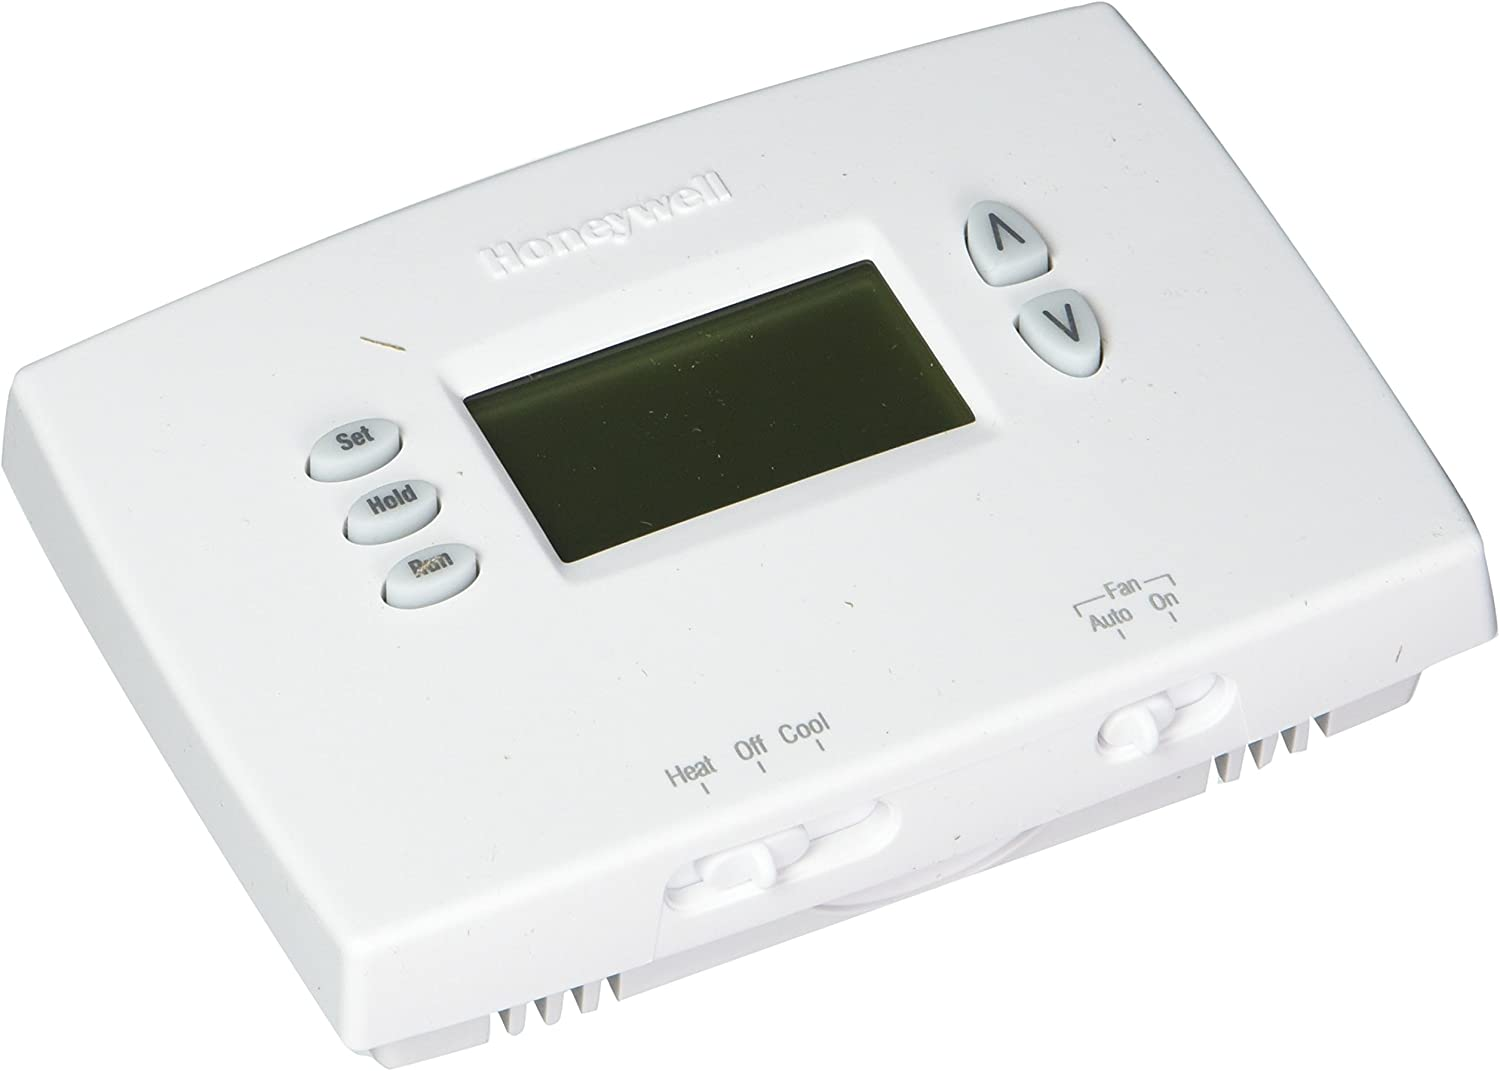 Miami Mall Honeywell Home NEW 5-2 Day Programmable RTHL2310B1008 Thermostat